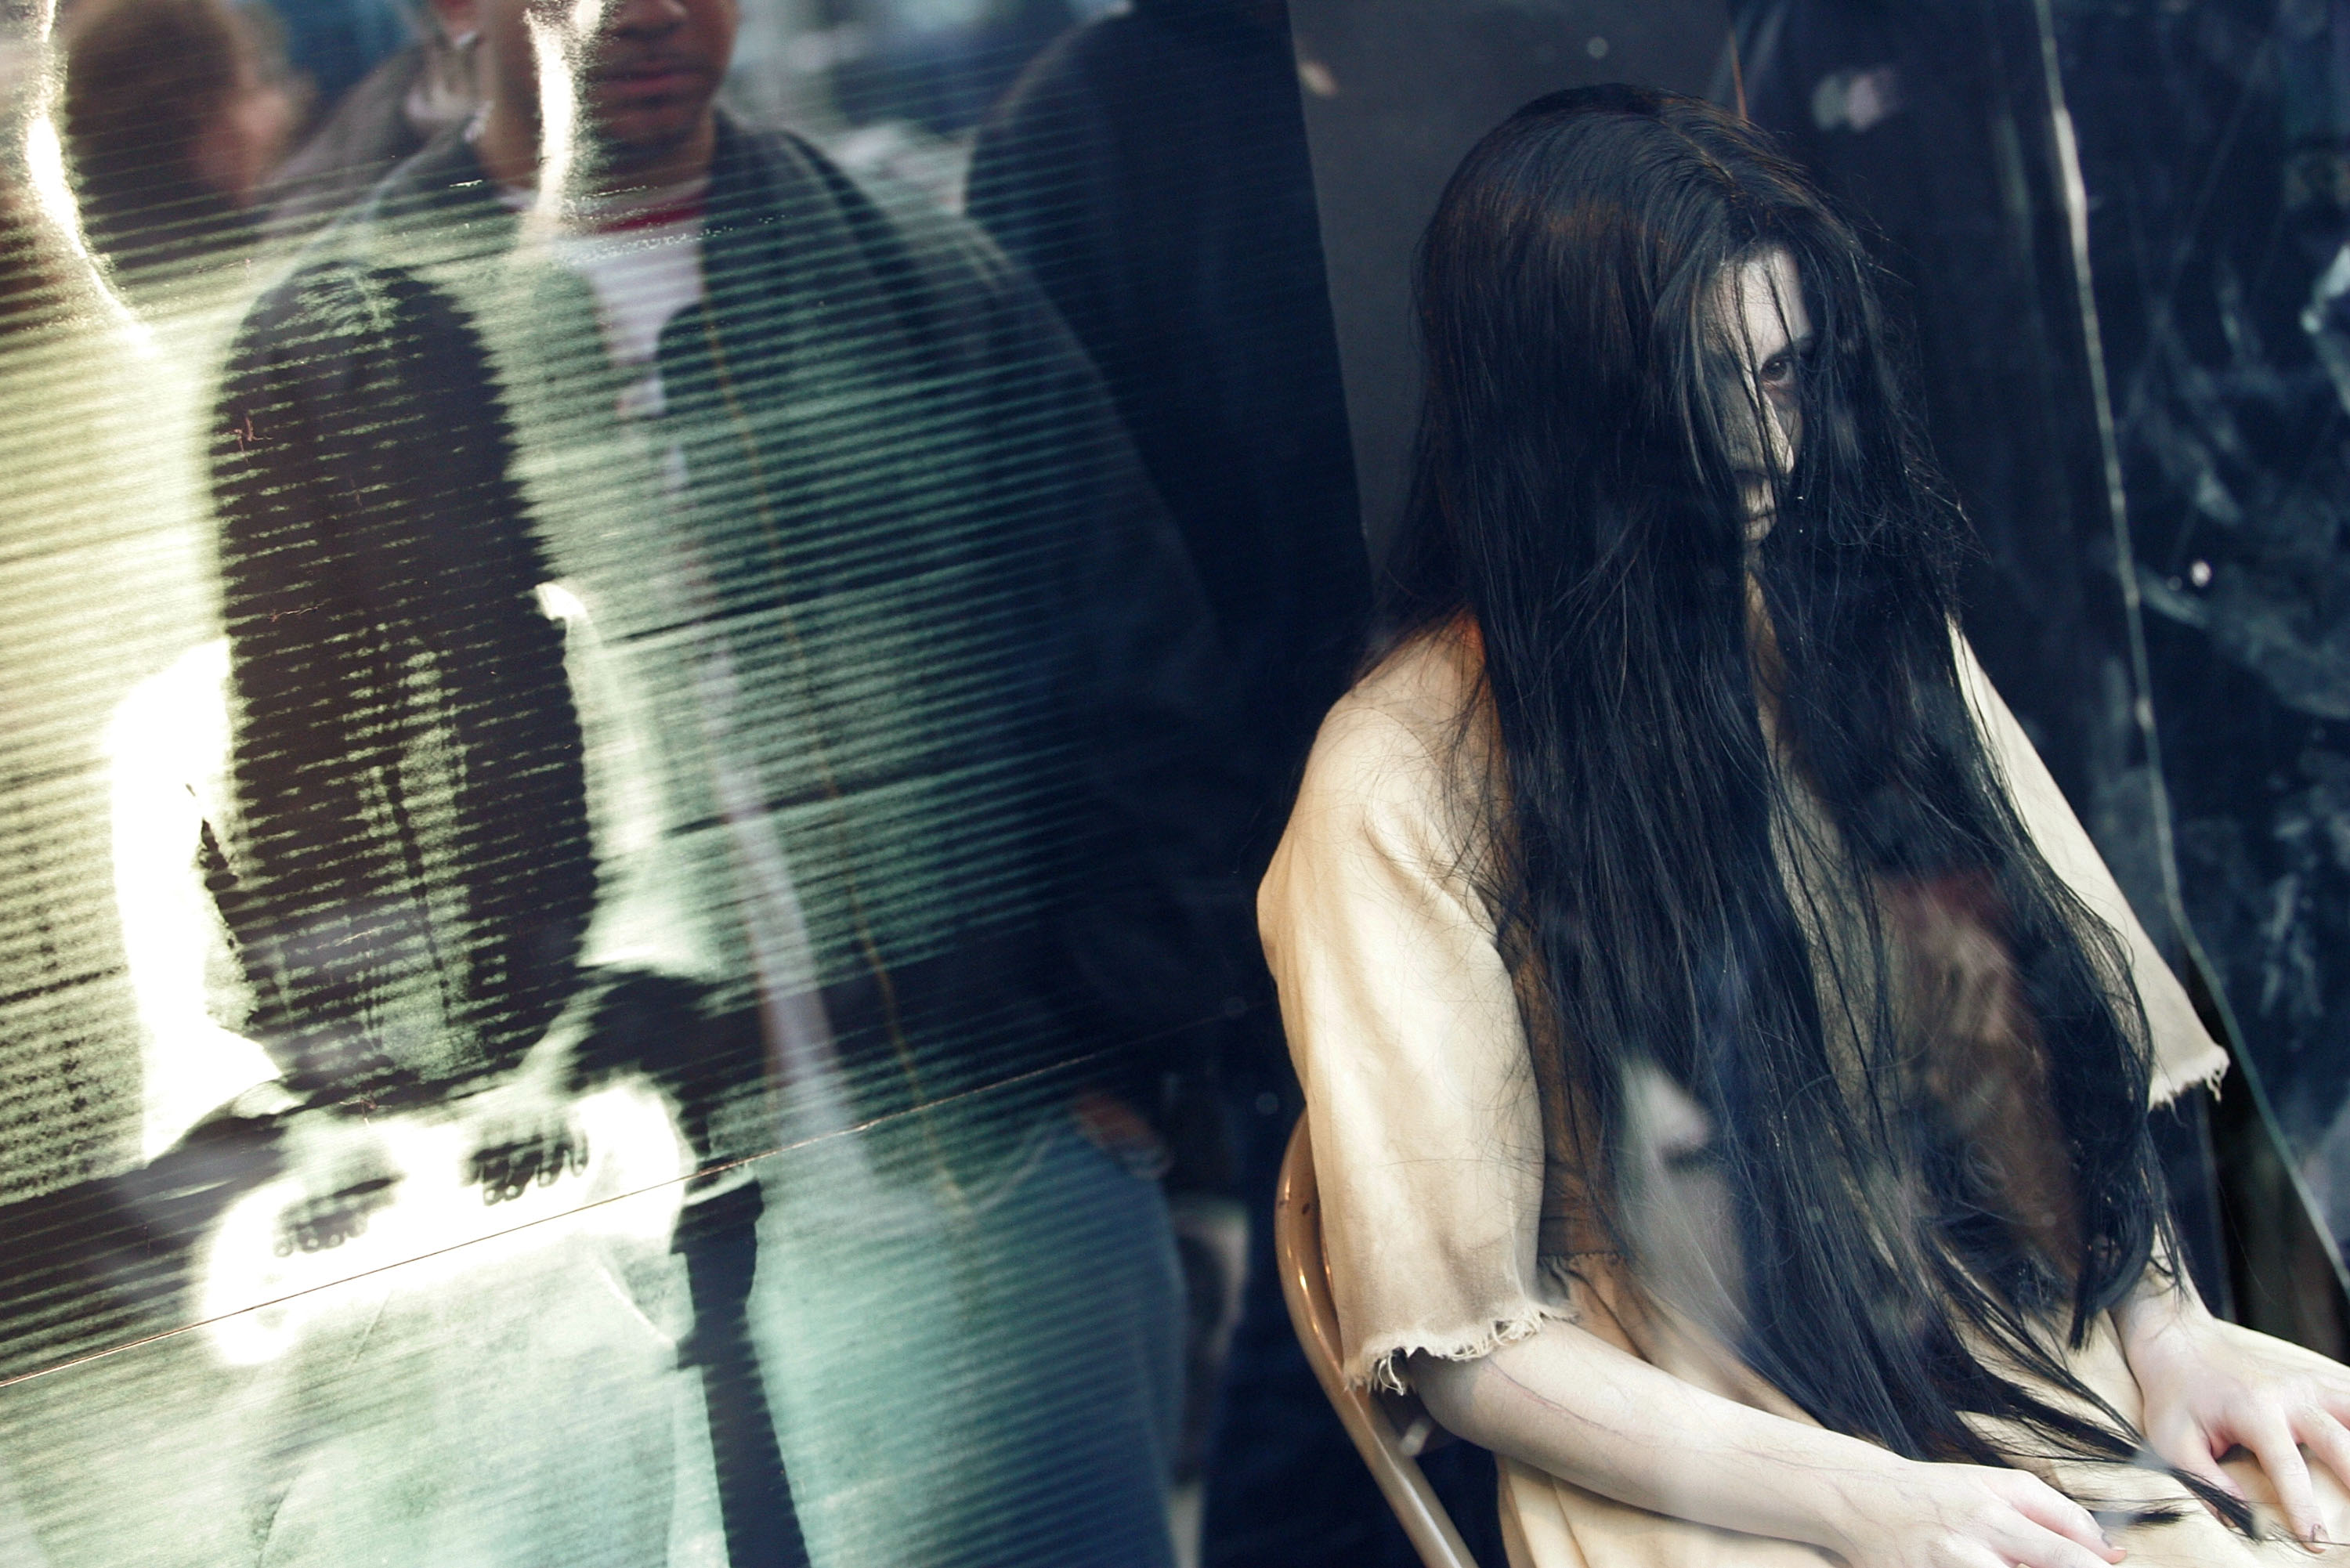 NEW YORK - MARCH 17: Samara from 'The Ring Two' stares out at pedestrians from a window during a promotion at the Virgin Mega